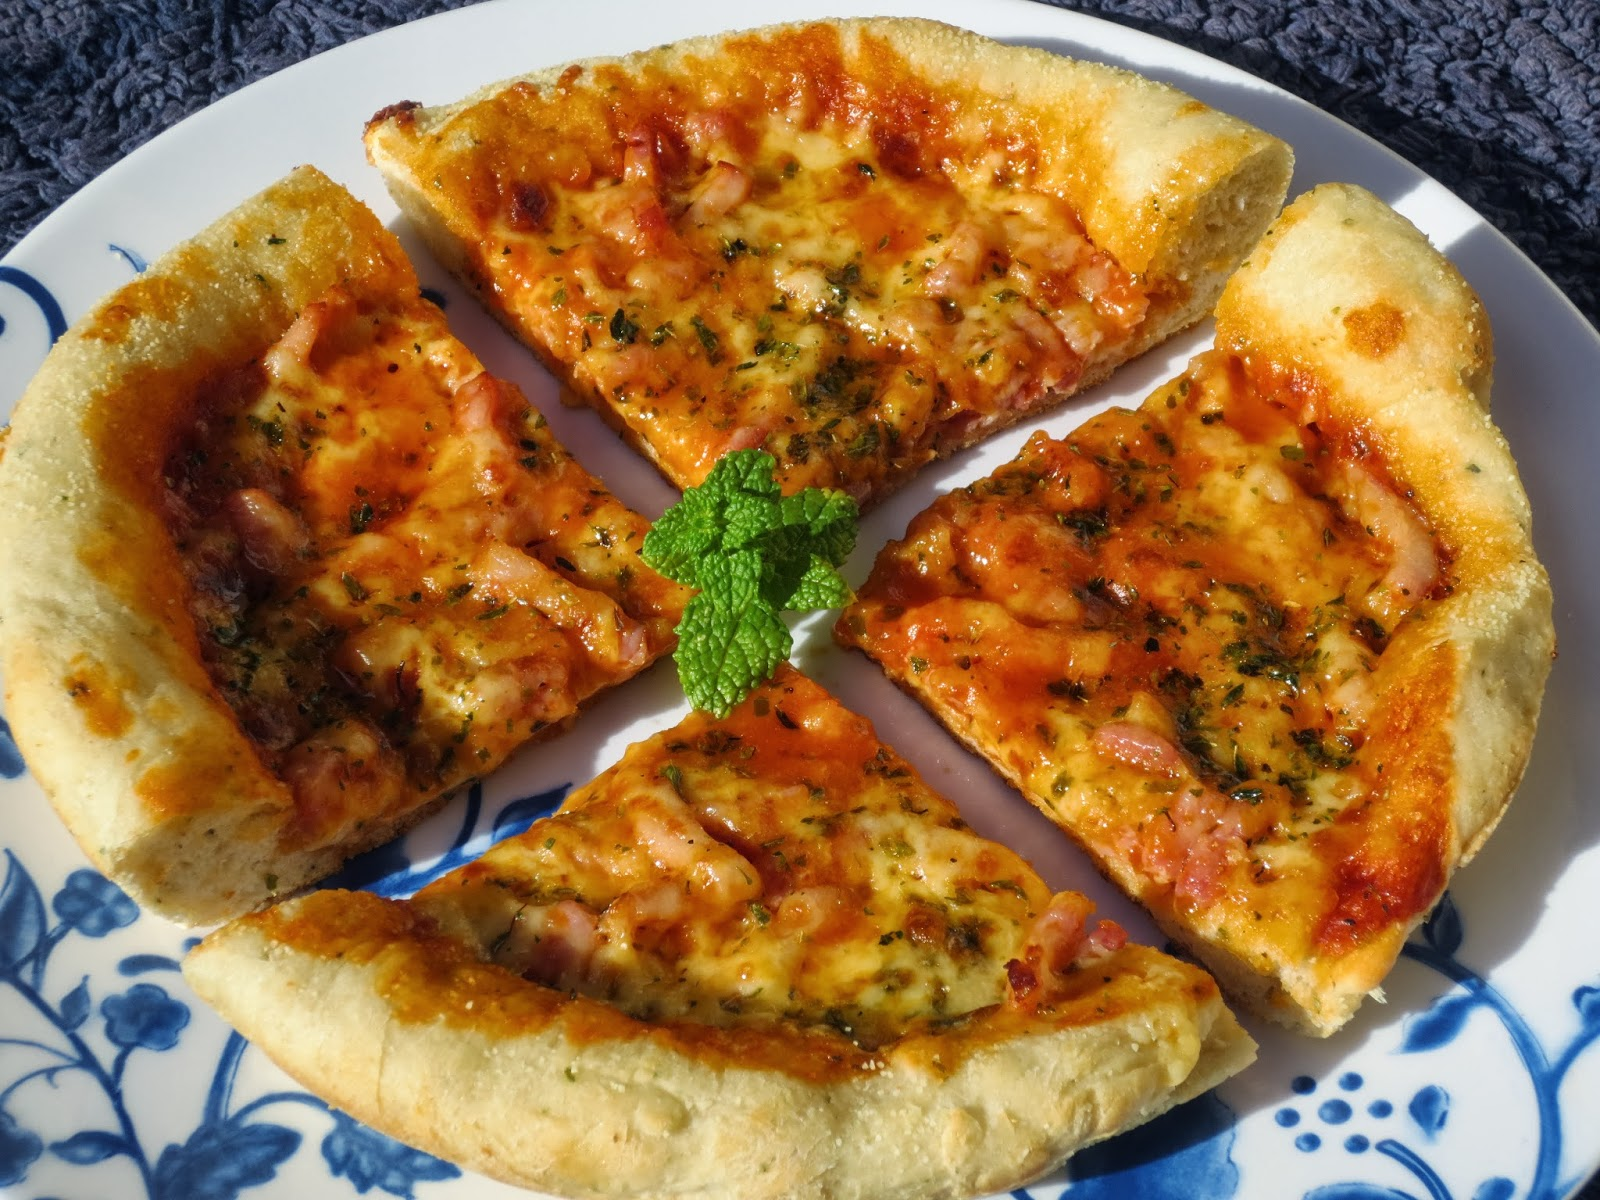 dominos pizza 6 essay Complete nutrition information for 6 inch deep dish pizza from domino's pizza including calories, weight watchers points, ingredients and allergens domino's pizza 6 inch deep dish pizza nutrition facts.